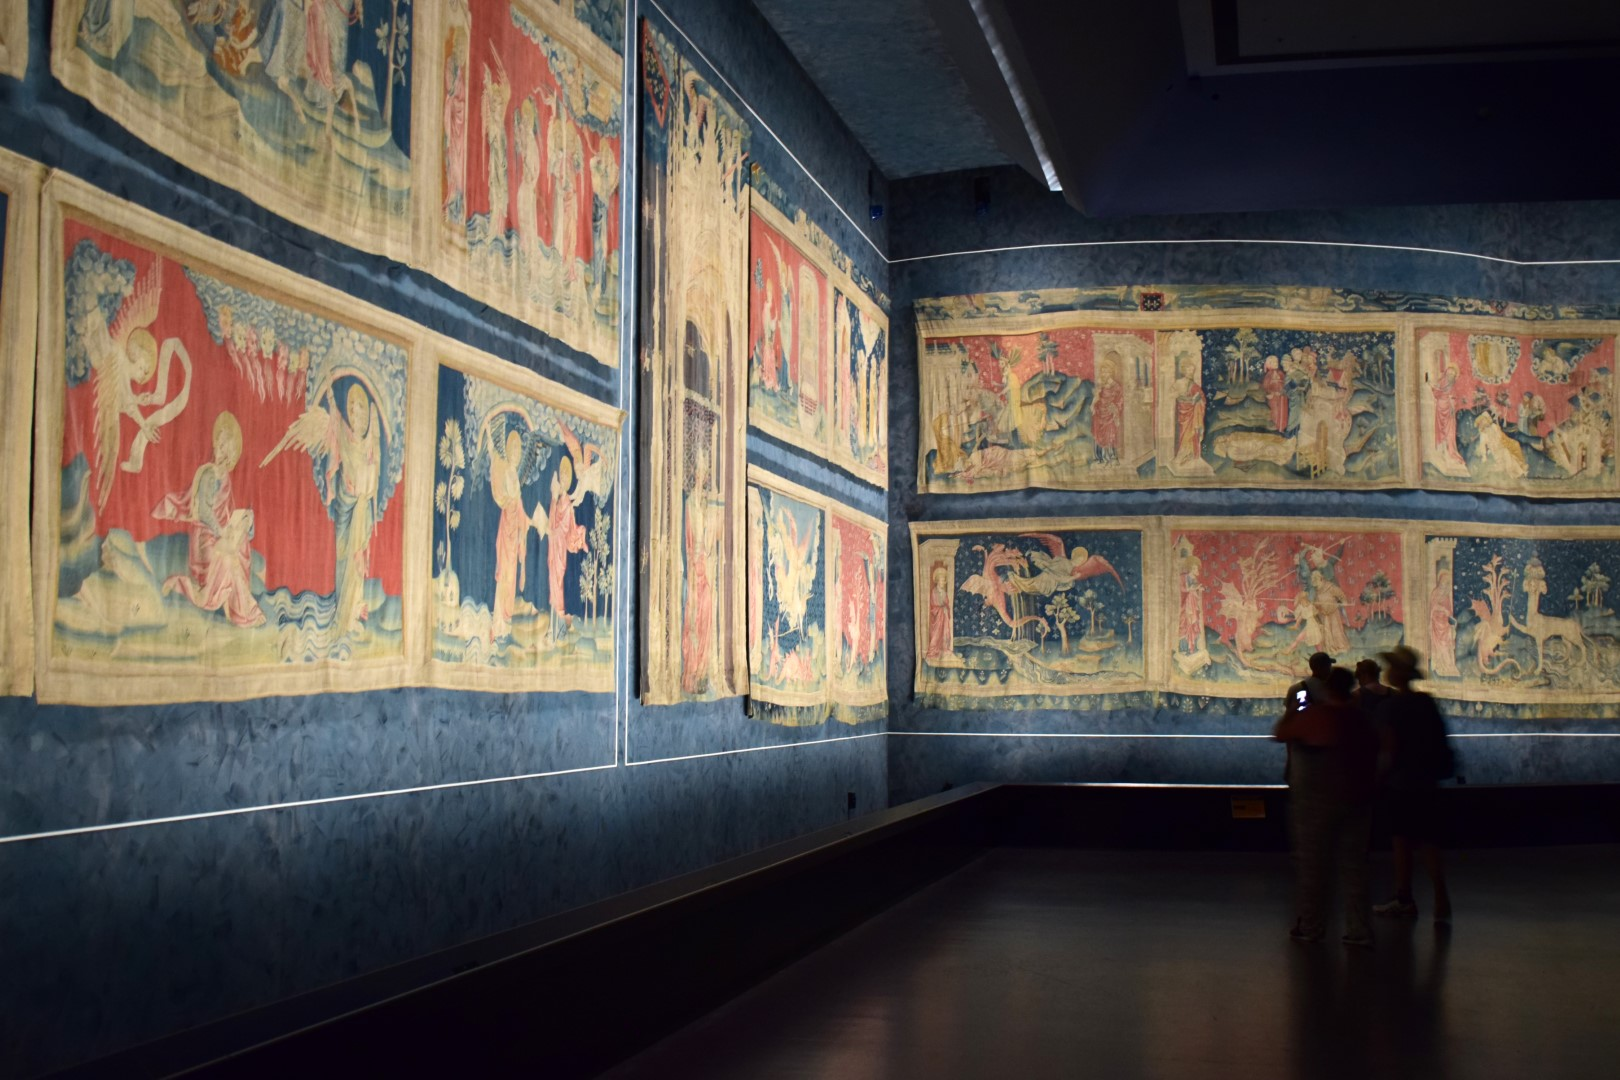 The Apocalypse Tapestry, Château d'Angers